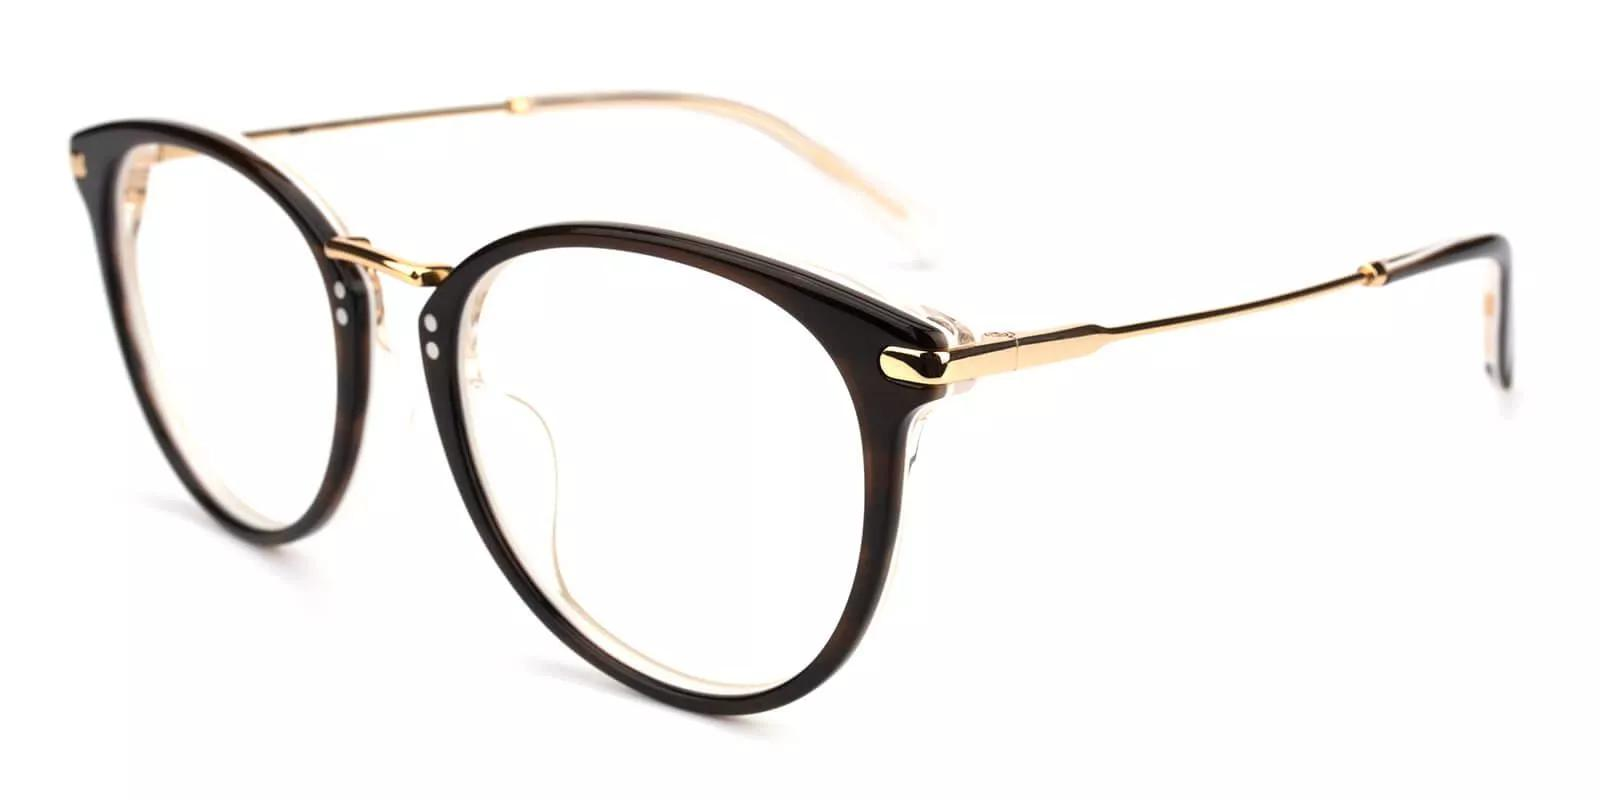 Clinton Acetate Eyeglasses Black